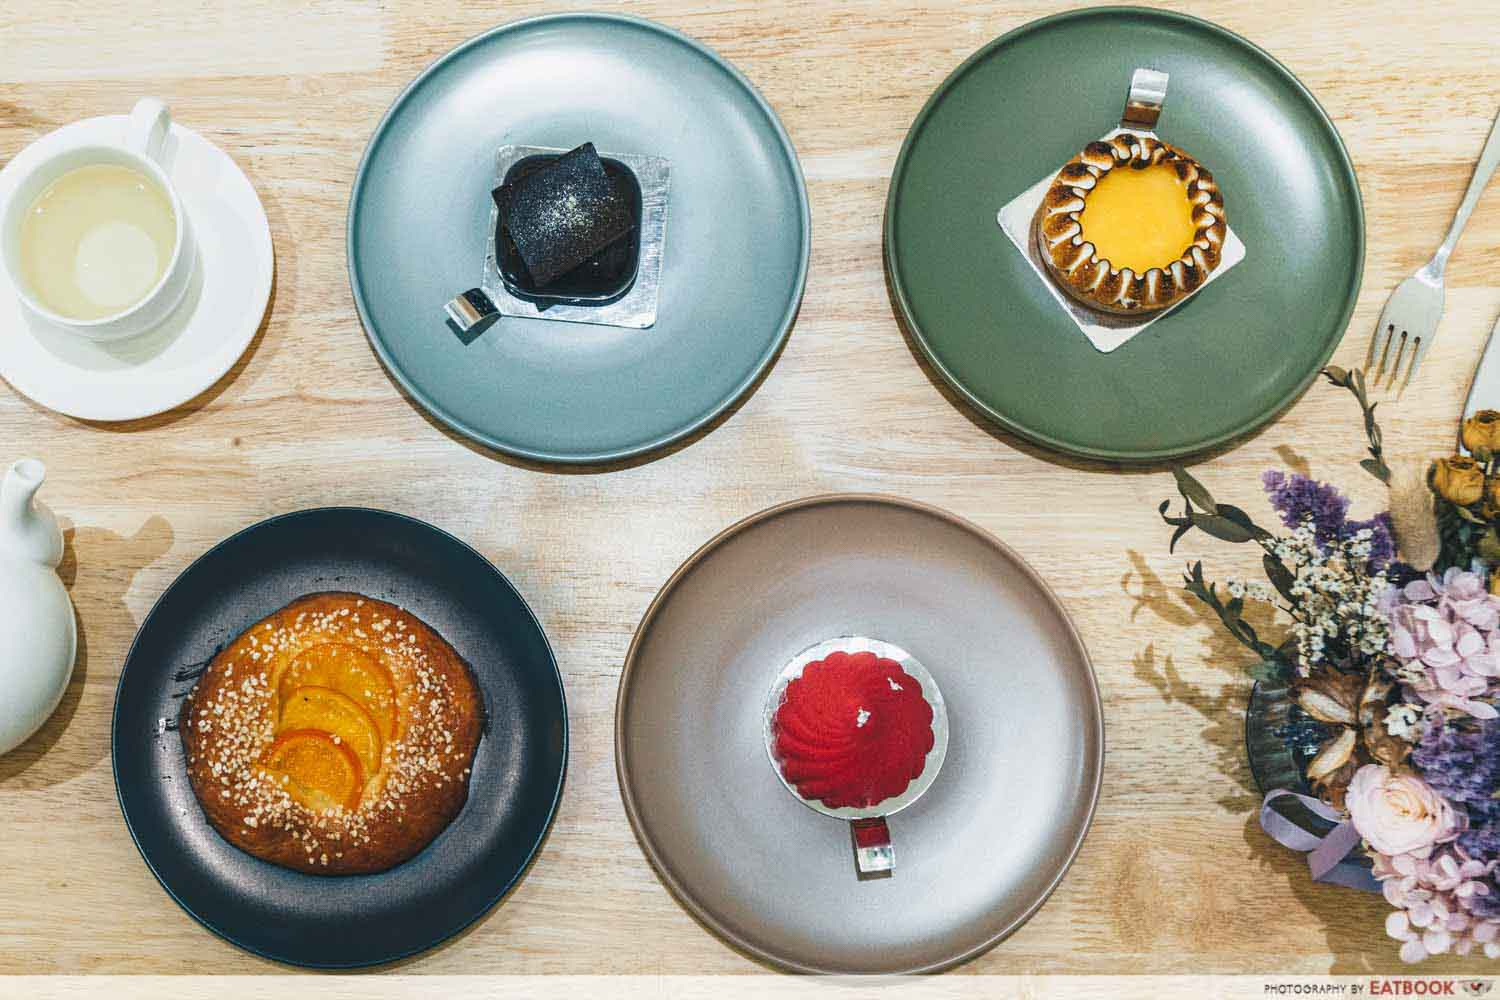 Dolc Patisserie - flatlay of pastries